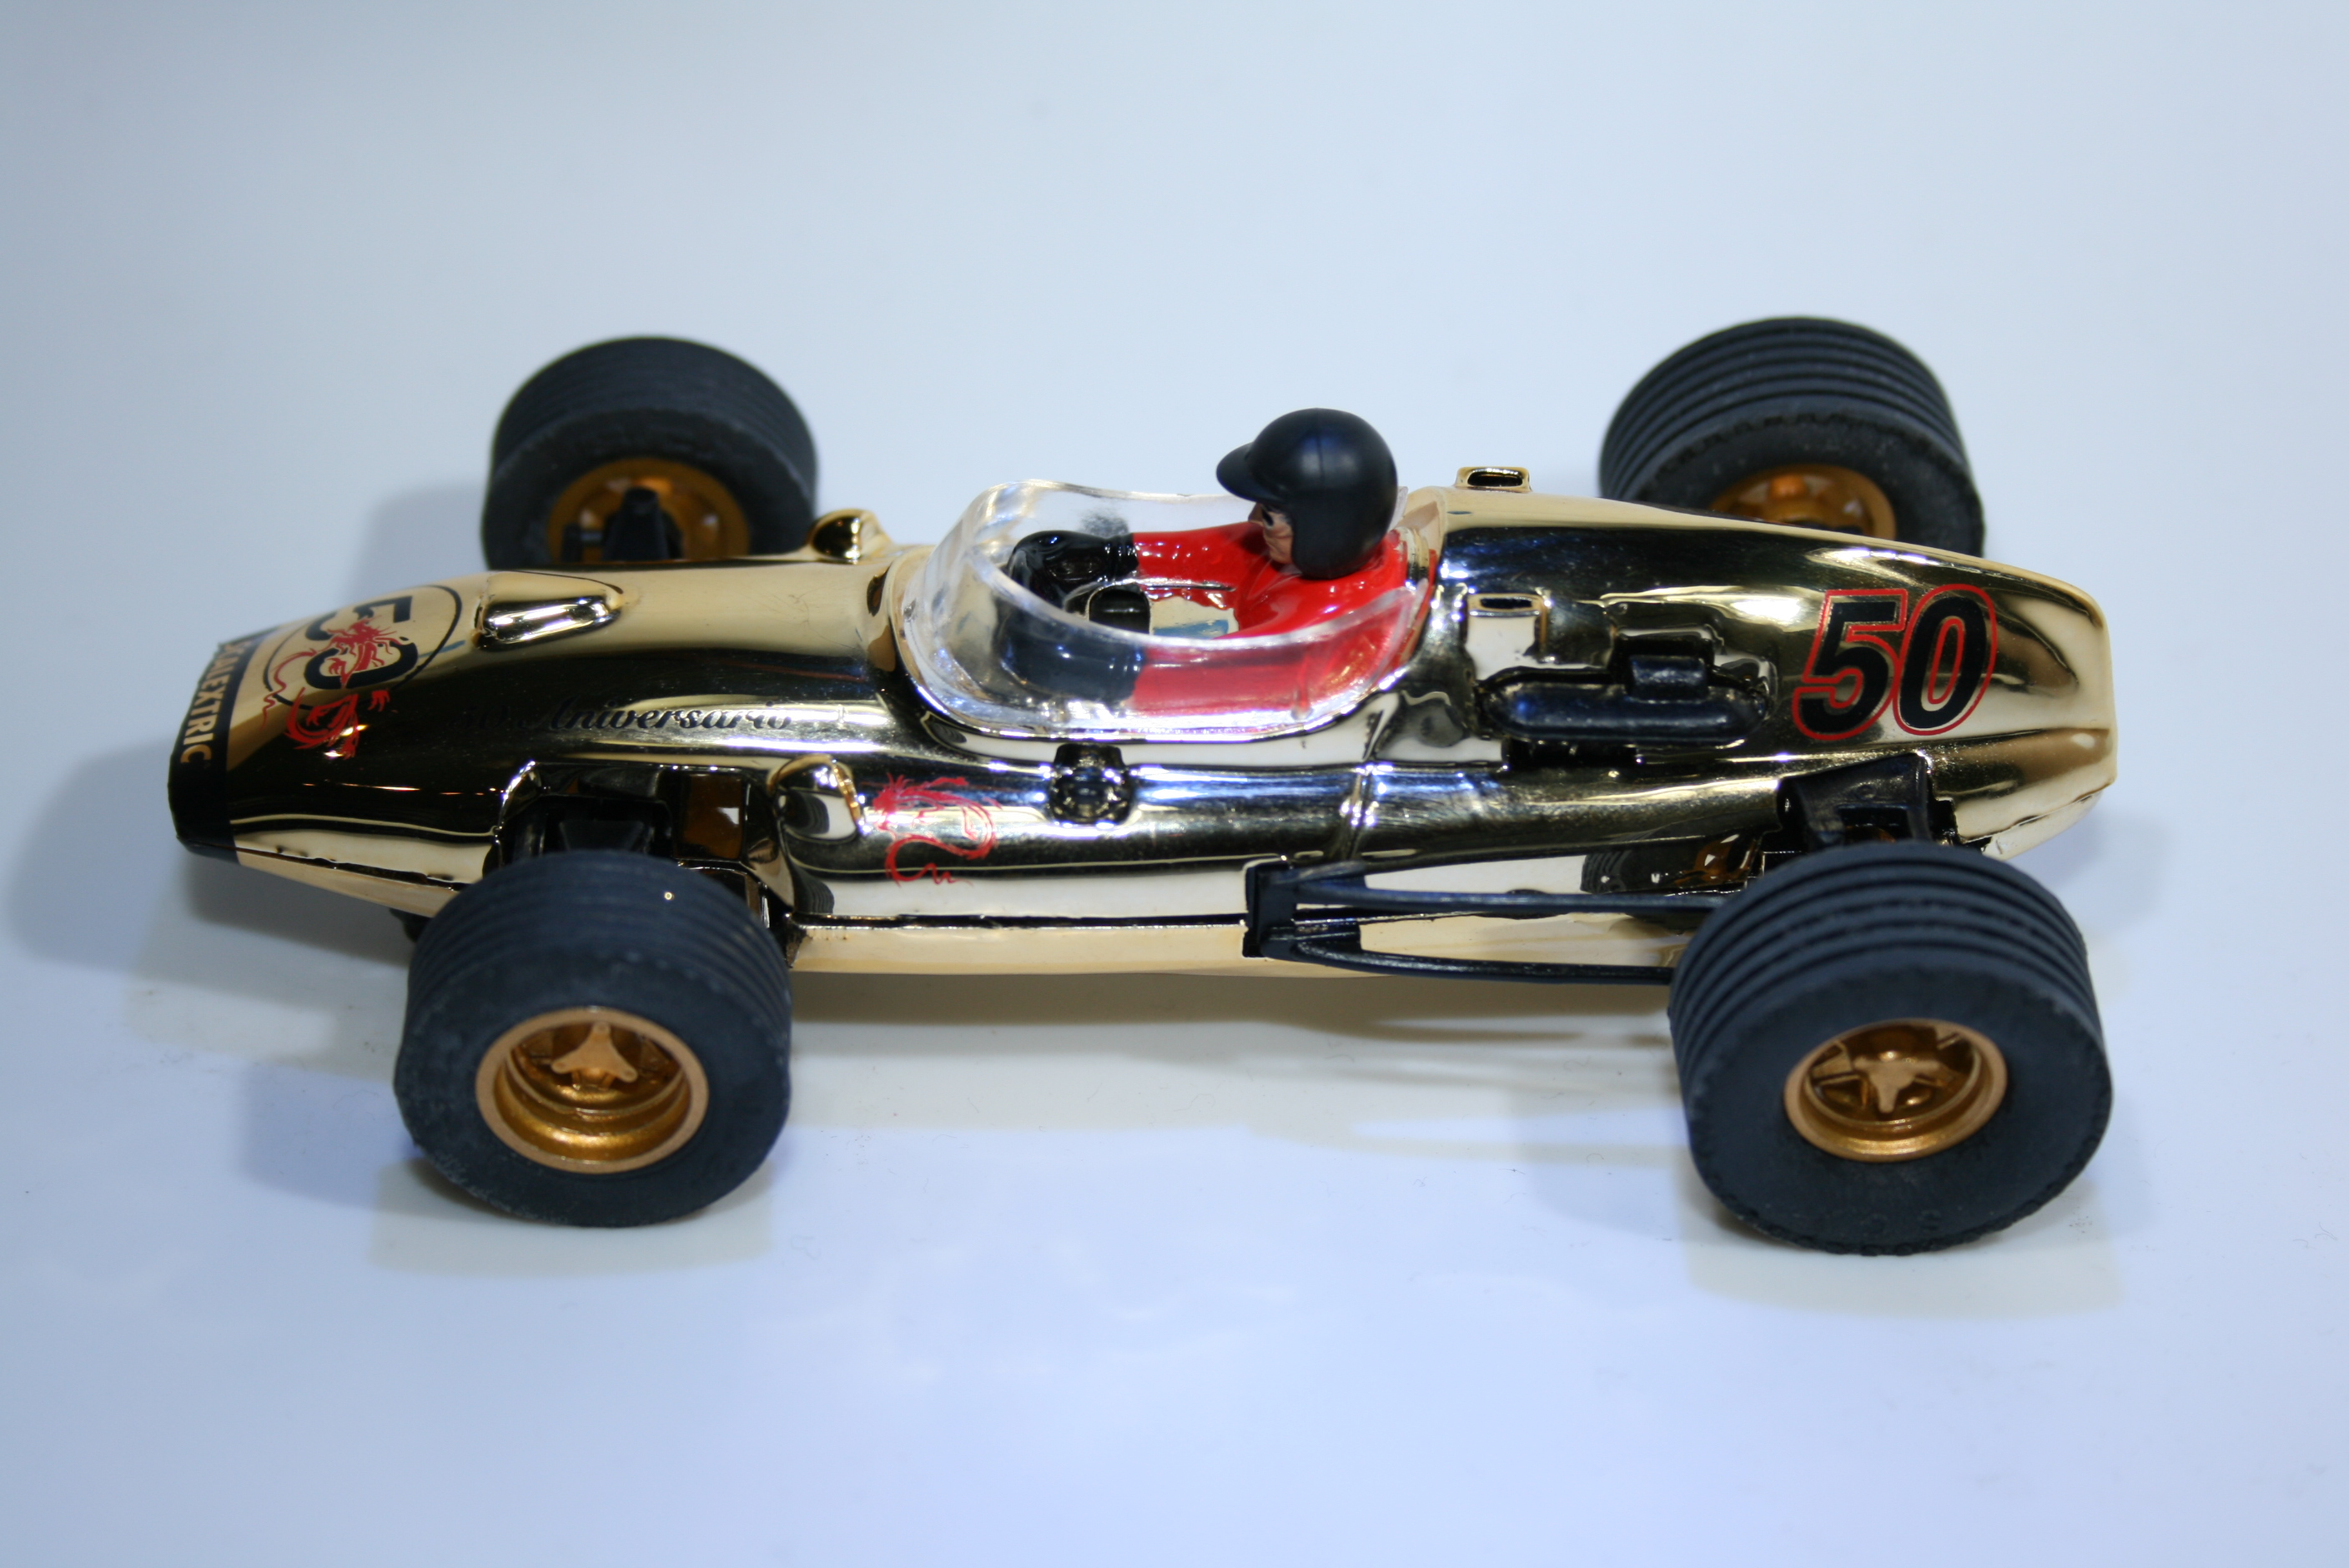 721 Cooper T51 Climax 1959 M Trintignant Scalextric A10107 Boxed